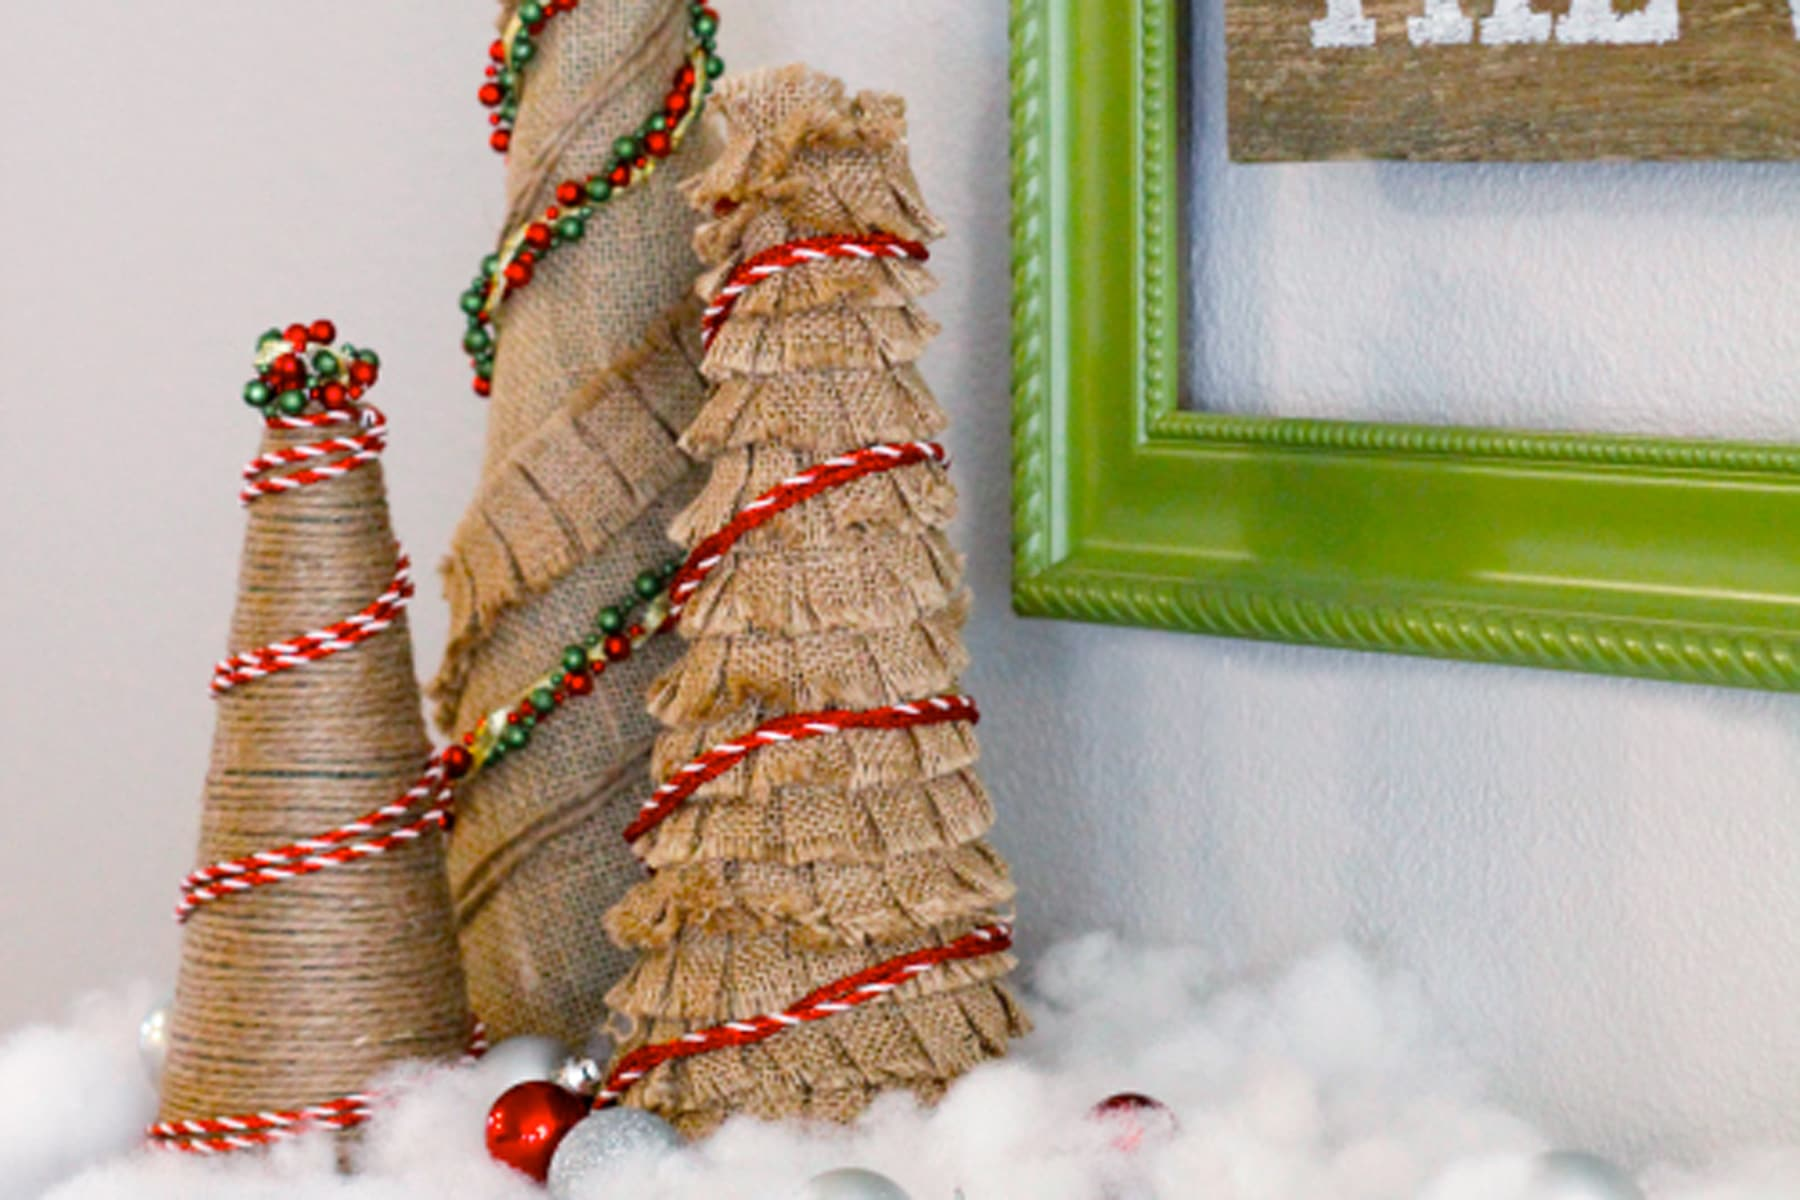 Mini Burlap Christmas Trees With Red Trim Against A Green Frame Image.